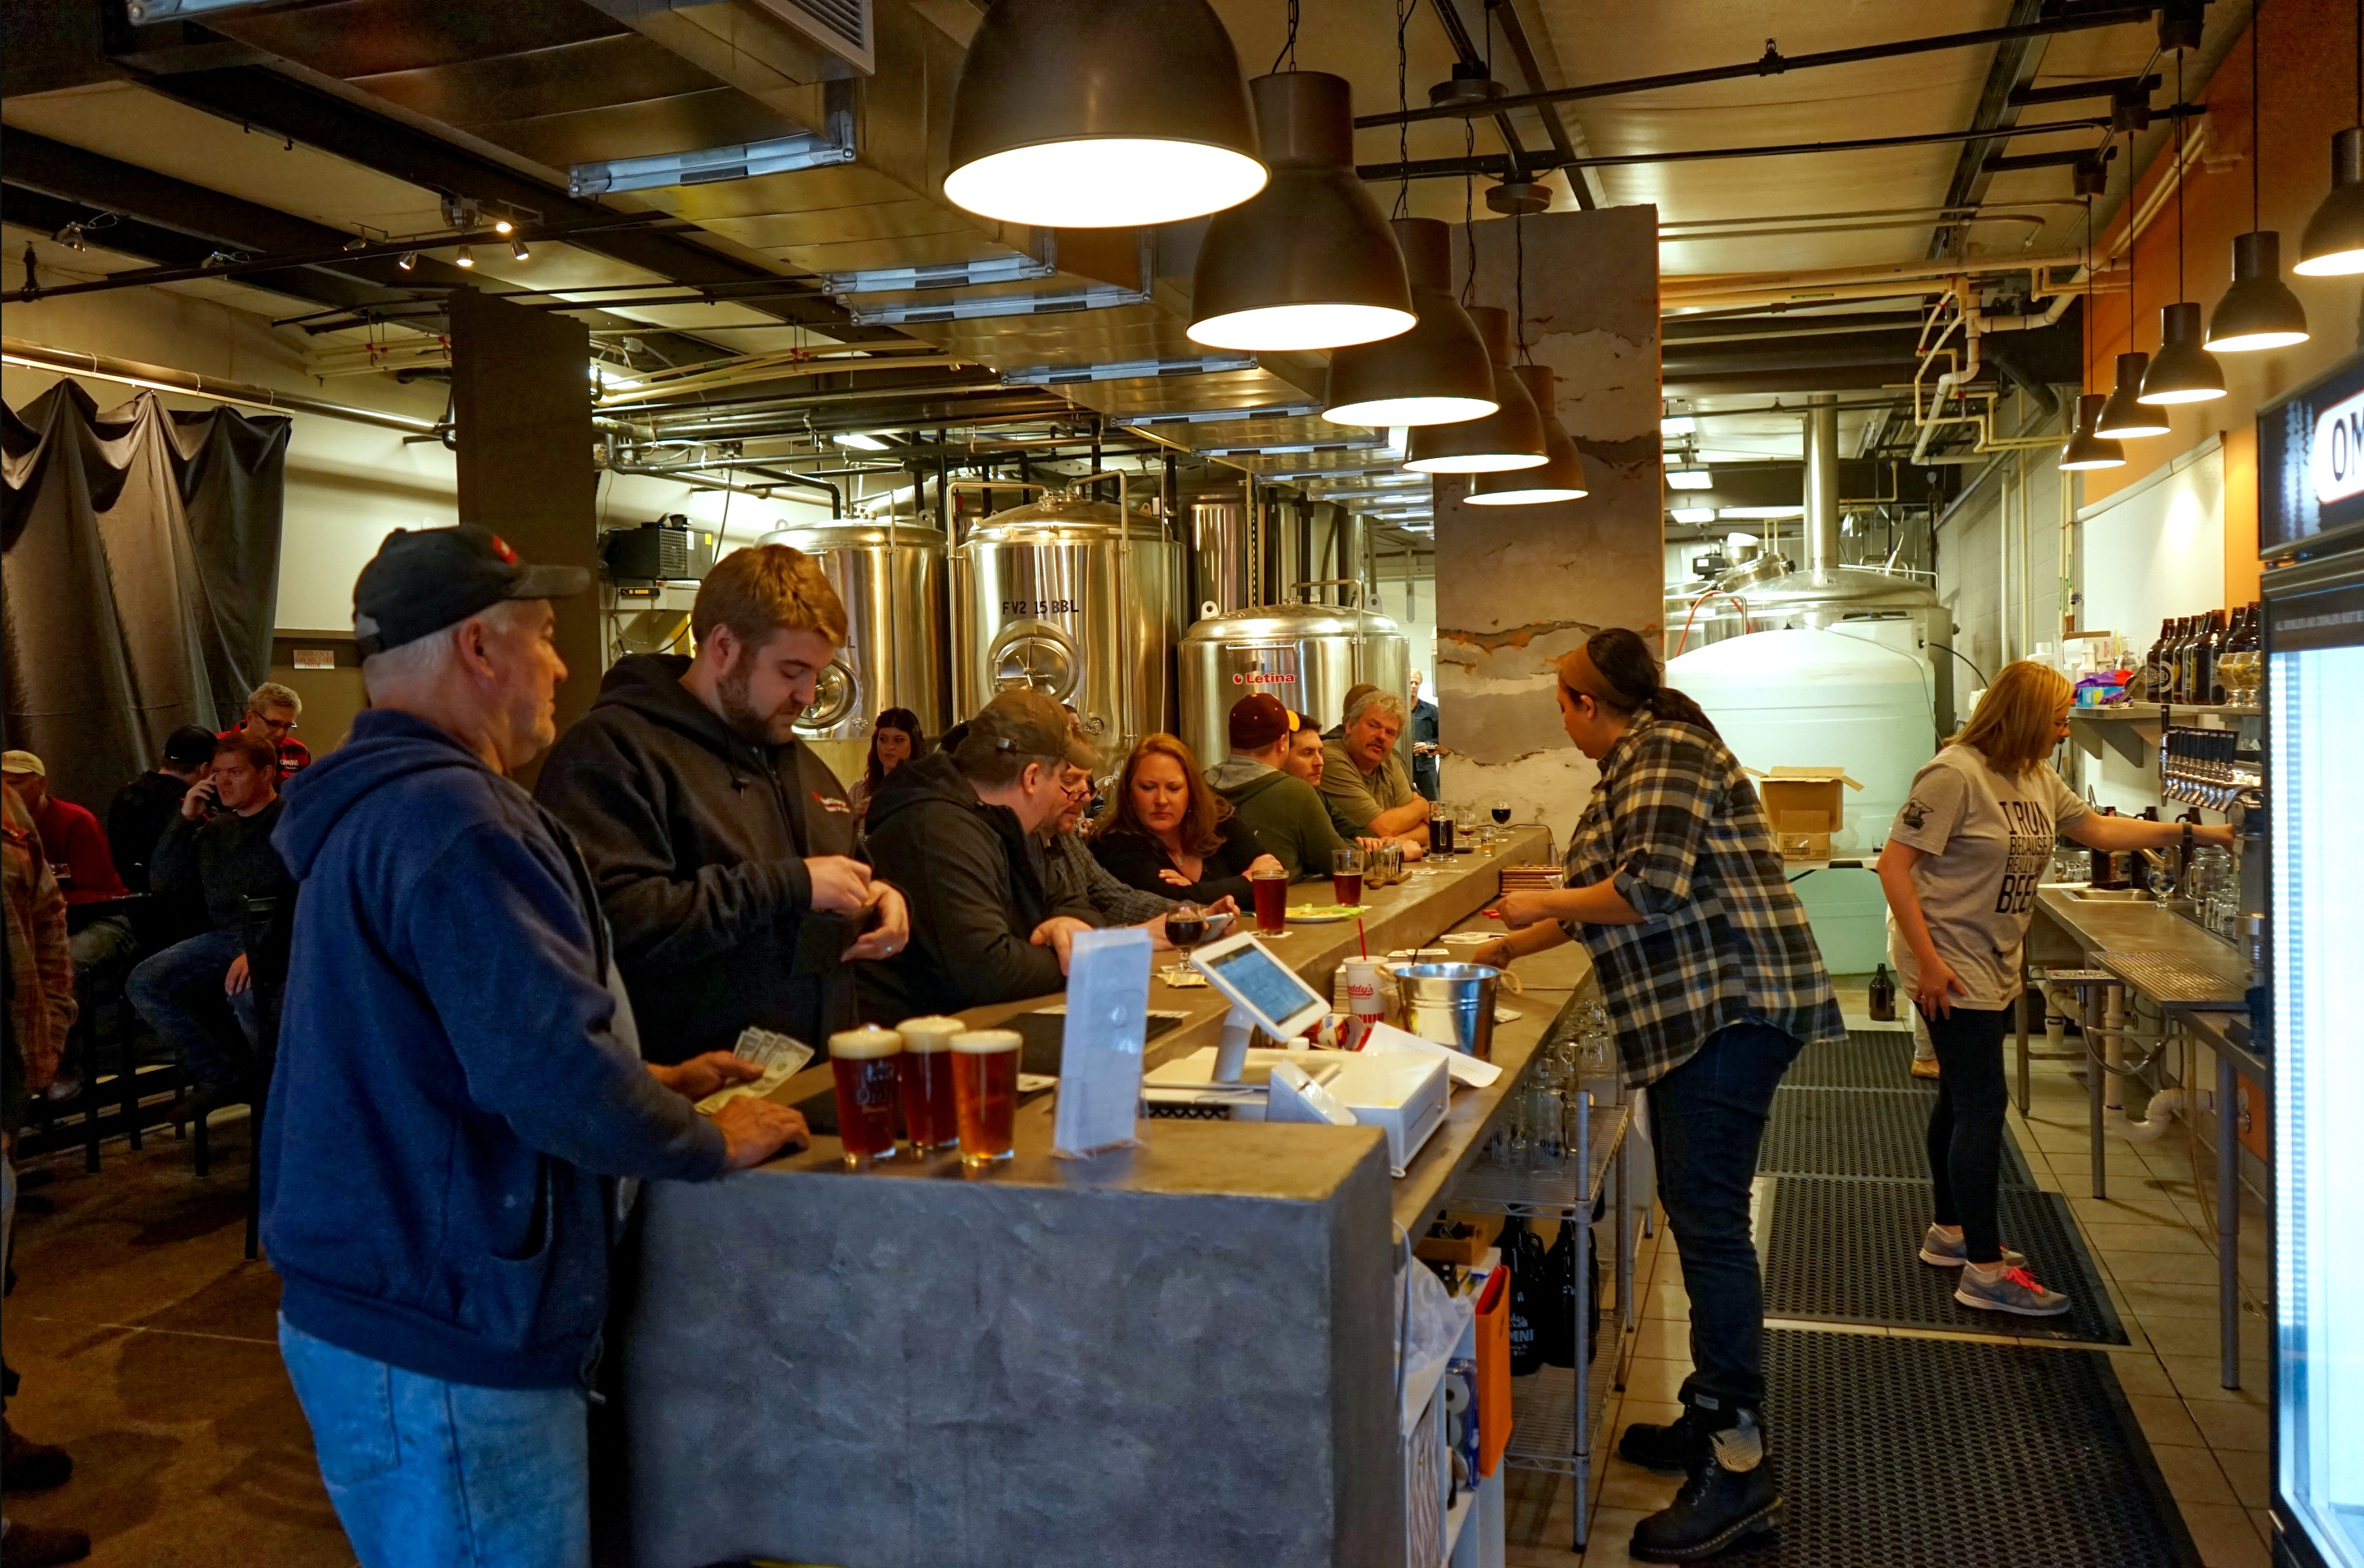 People ordering beers at a brewery